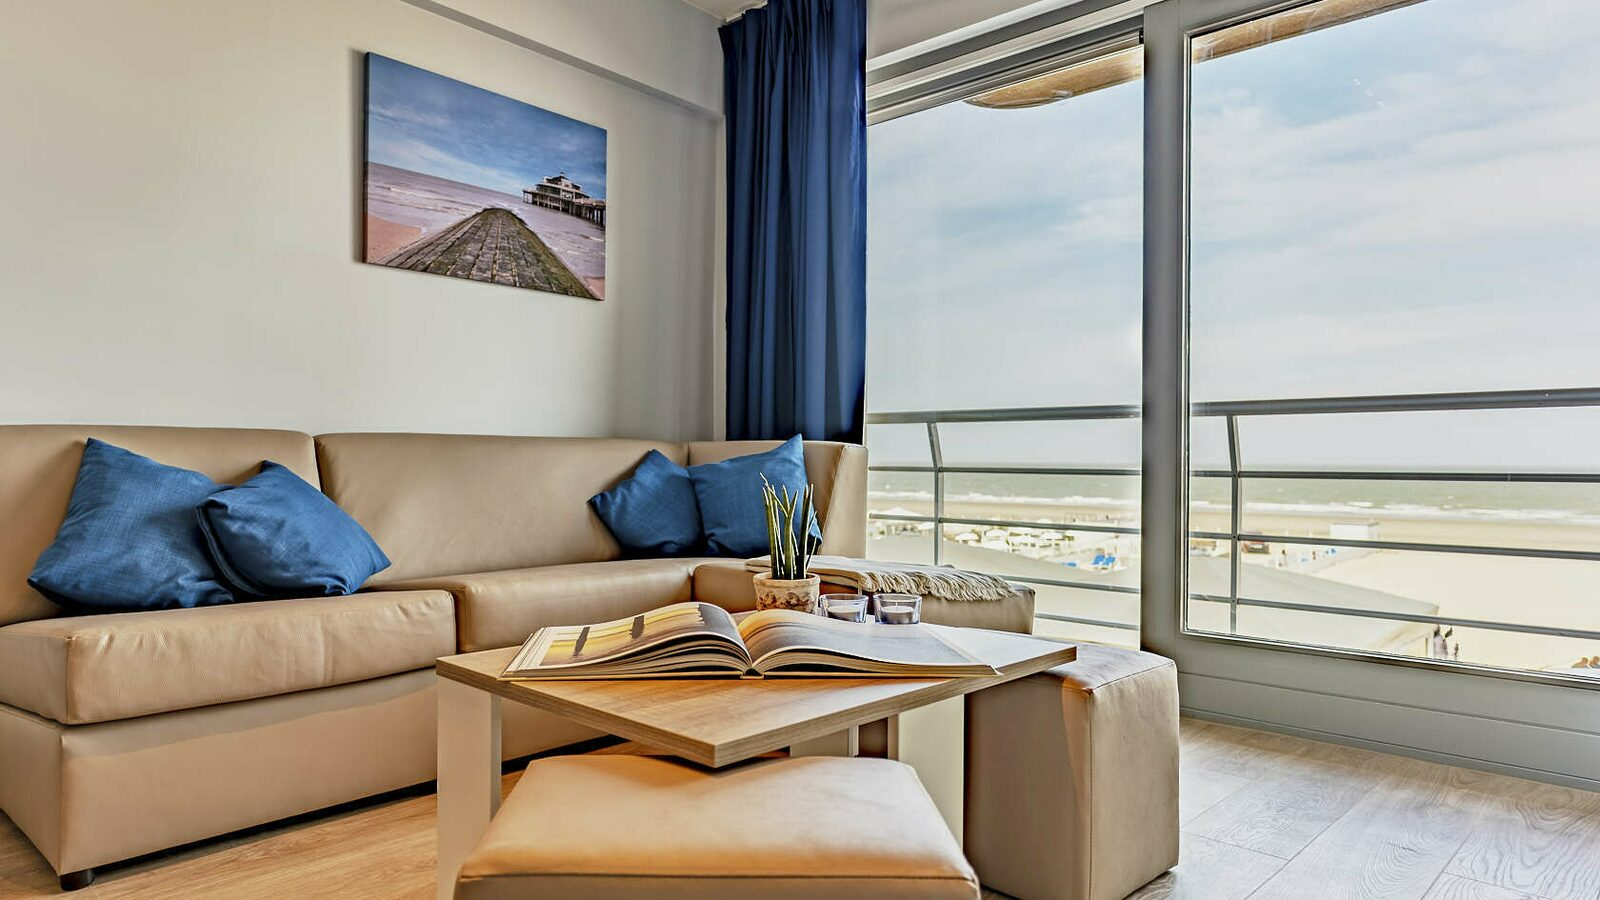 Essential Suite - 4p | Sleeping corner - Sofa bed | Balcony - Sea view